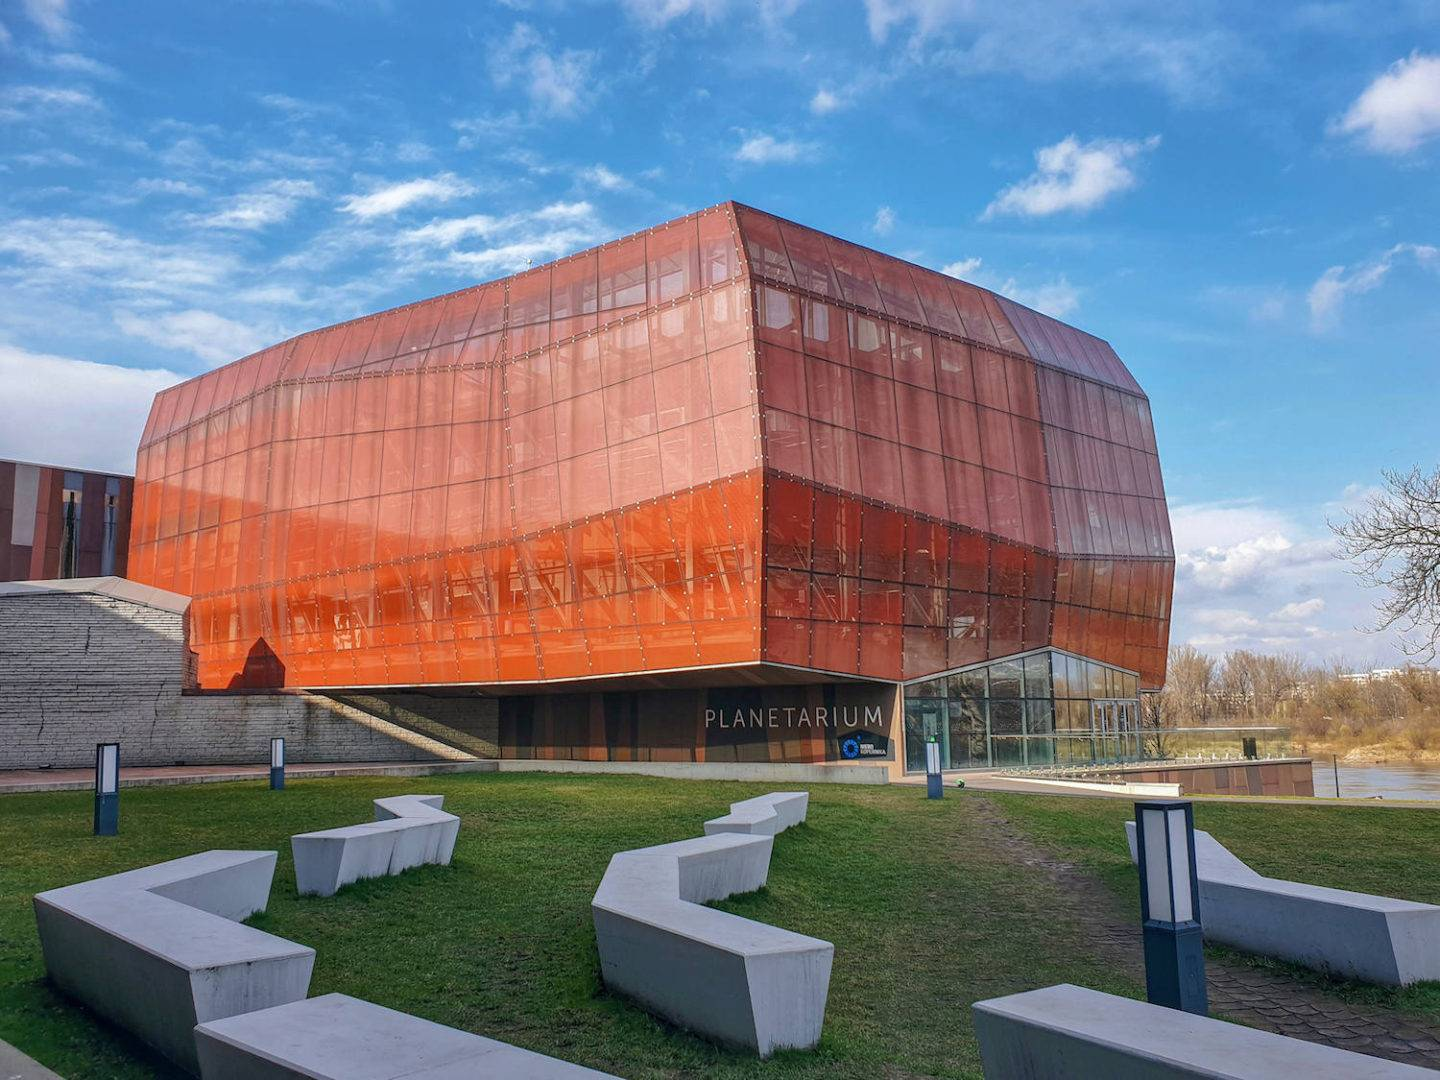 Rainy day activities in Warsaw: Copernicus Science Museum